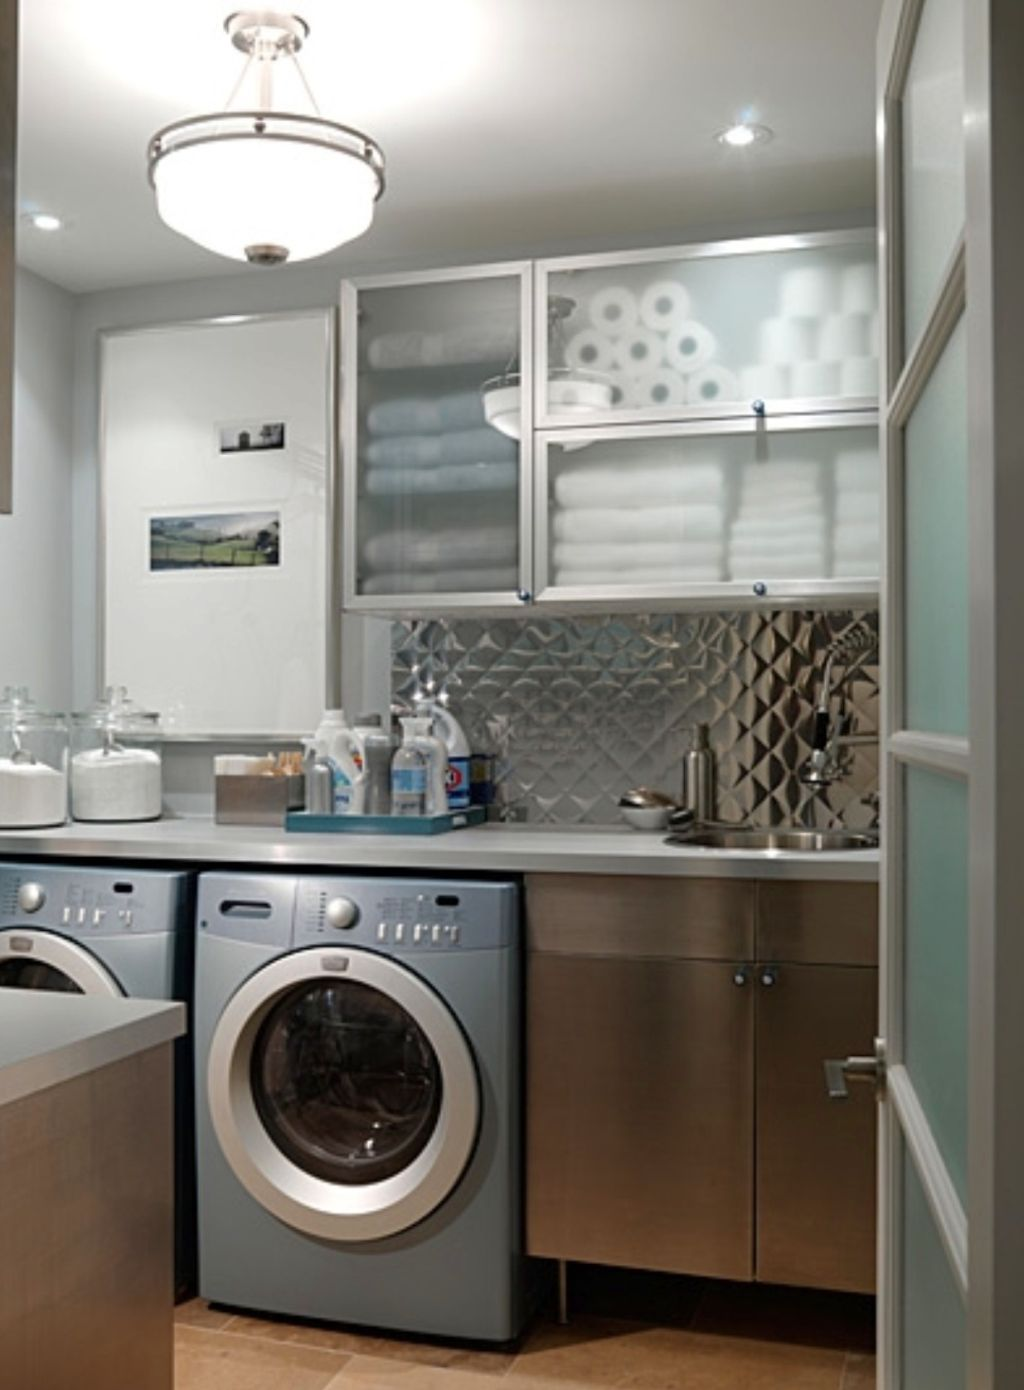 20 Beautiful Designs for Small Laundry Rooms on Small Laundry Ideas  id=83473